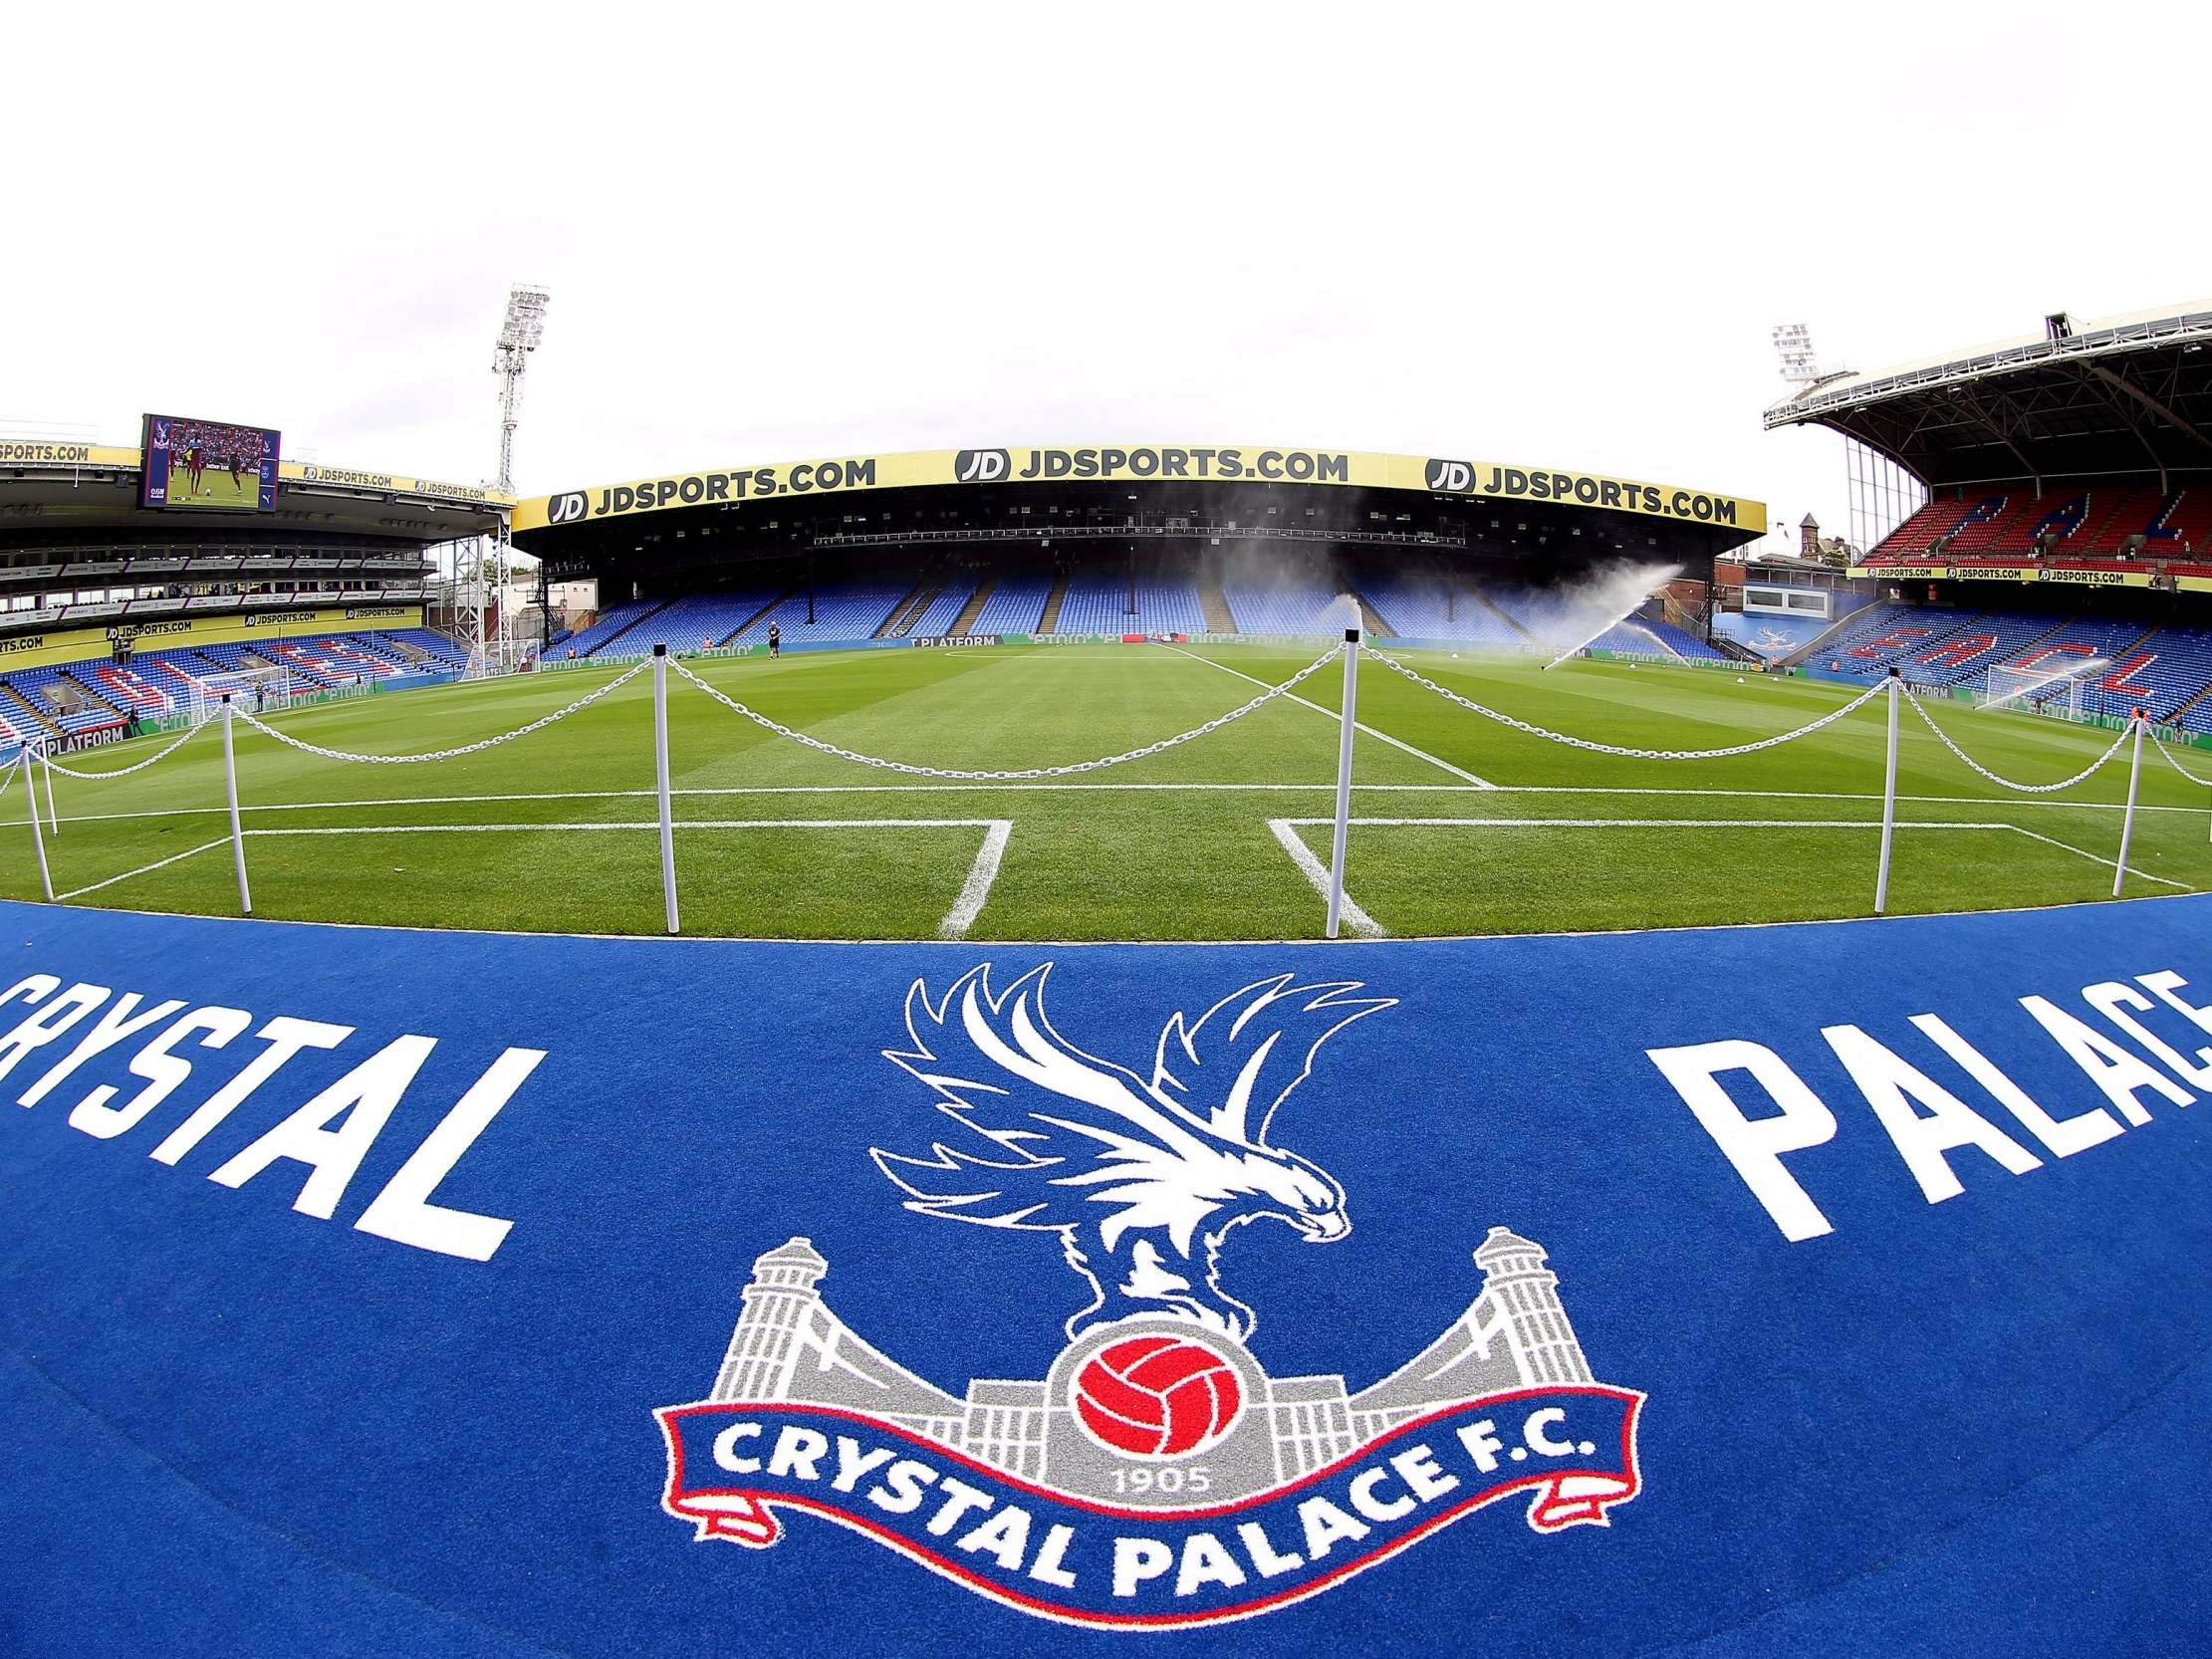 crystal palace vs everton - photo #18